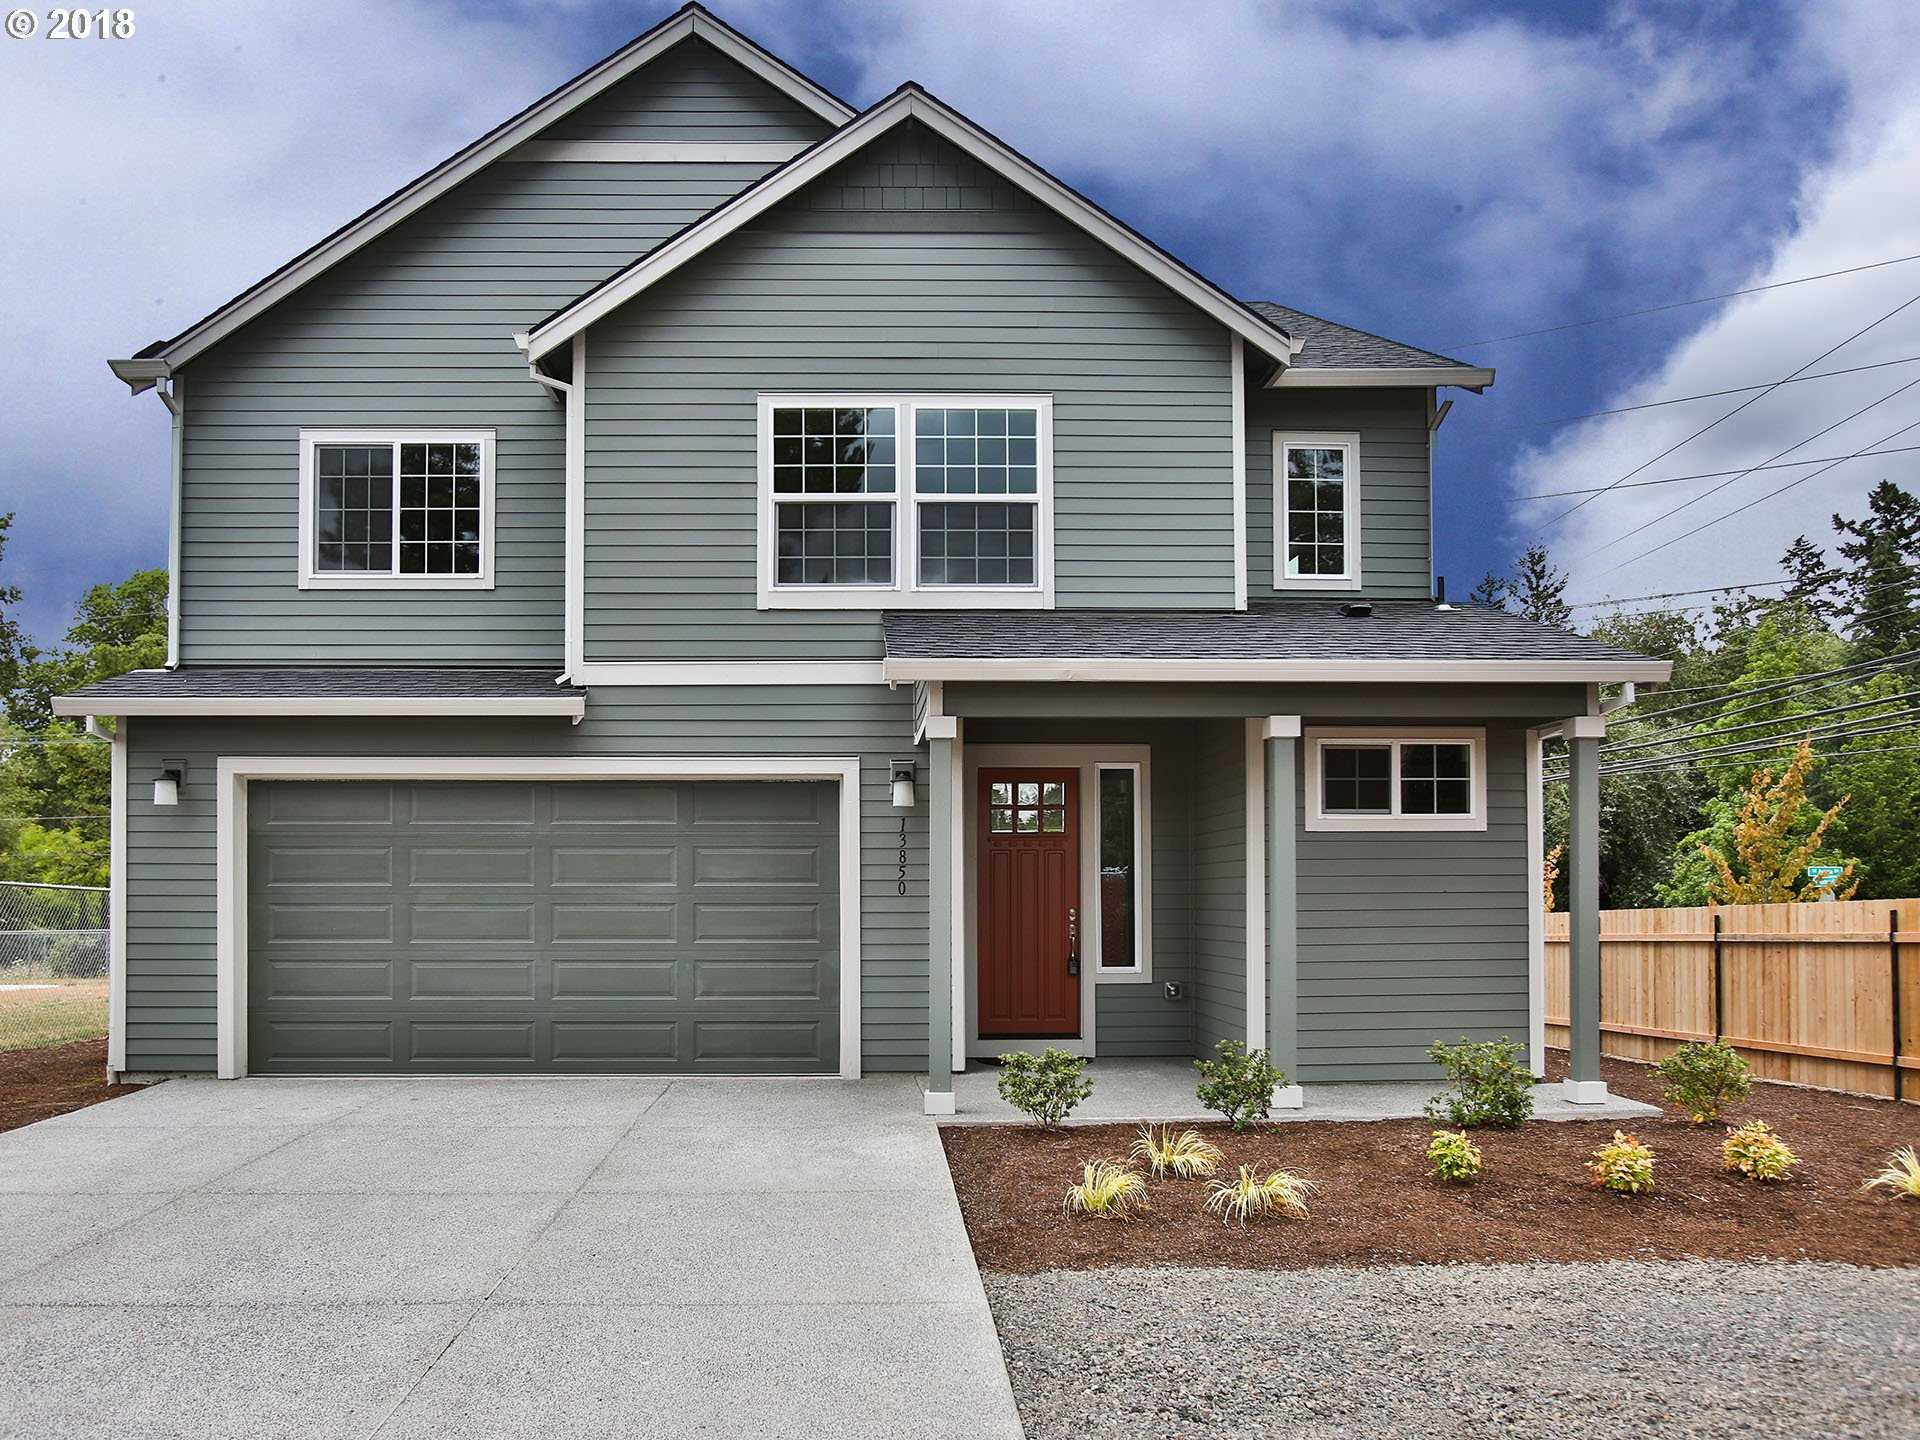 $500,000 - 4Br/3Ba -  for Sale in Milwaukie